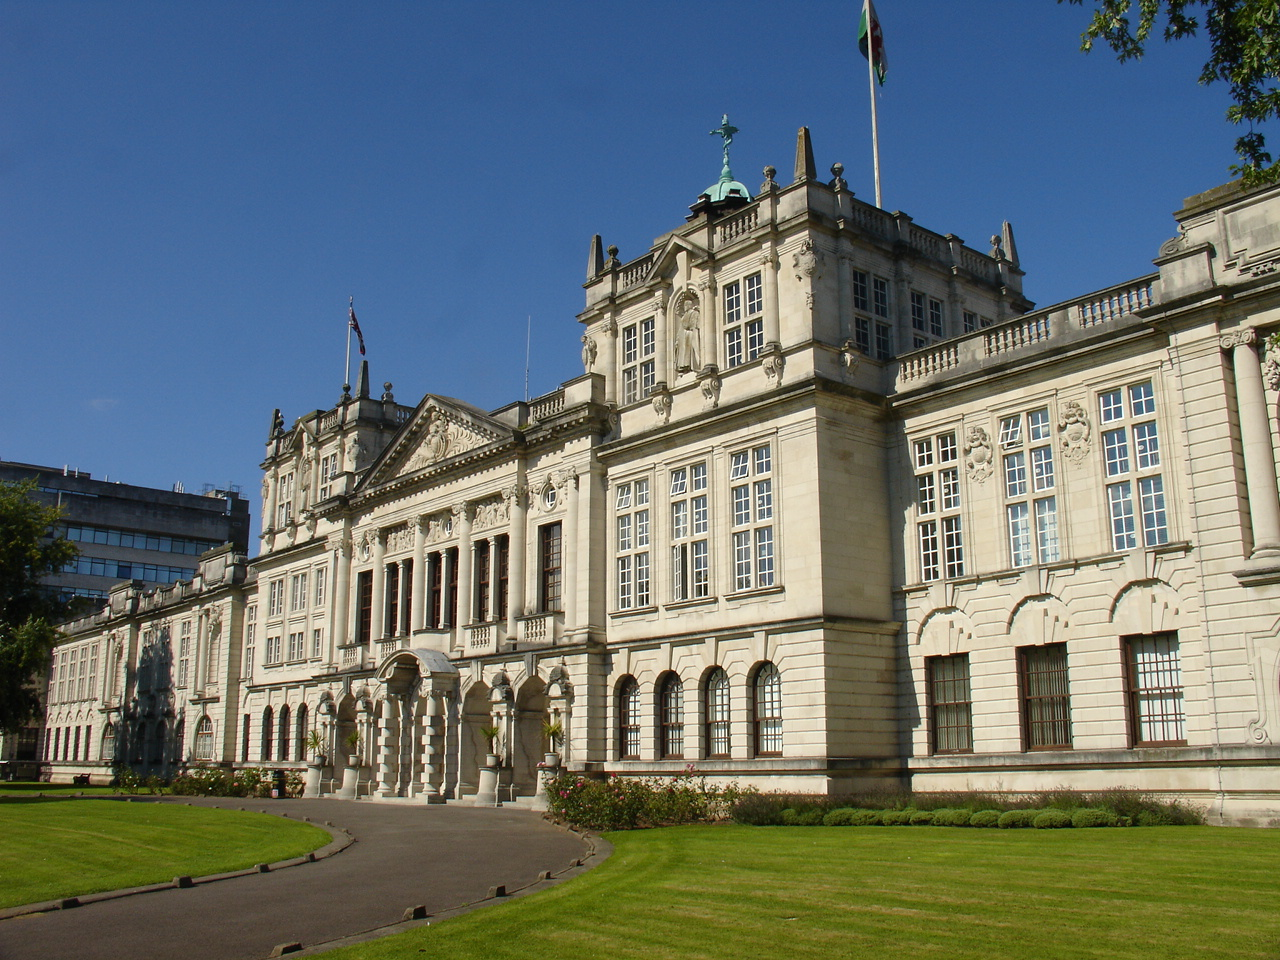 Number of Welsh students studying at Russell Group universities falls by 10%